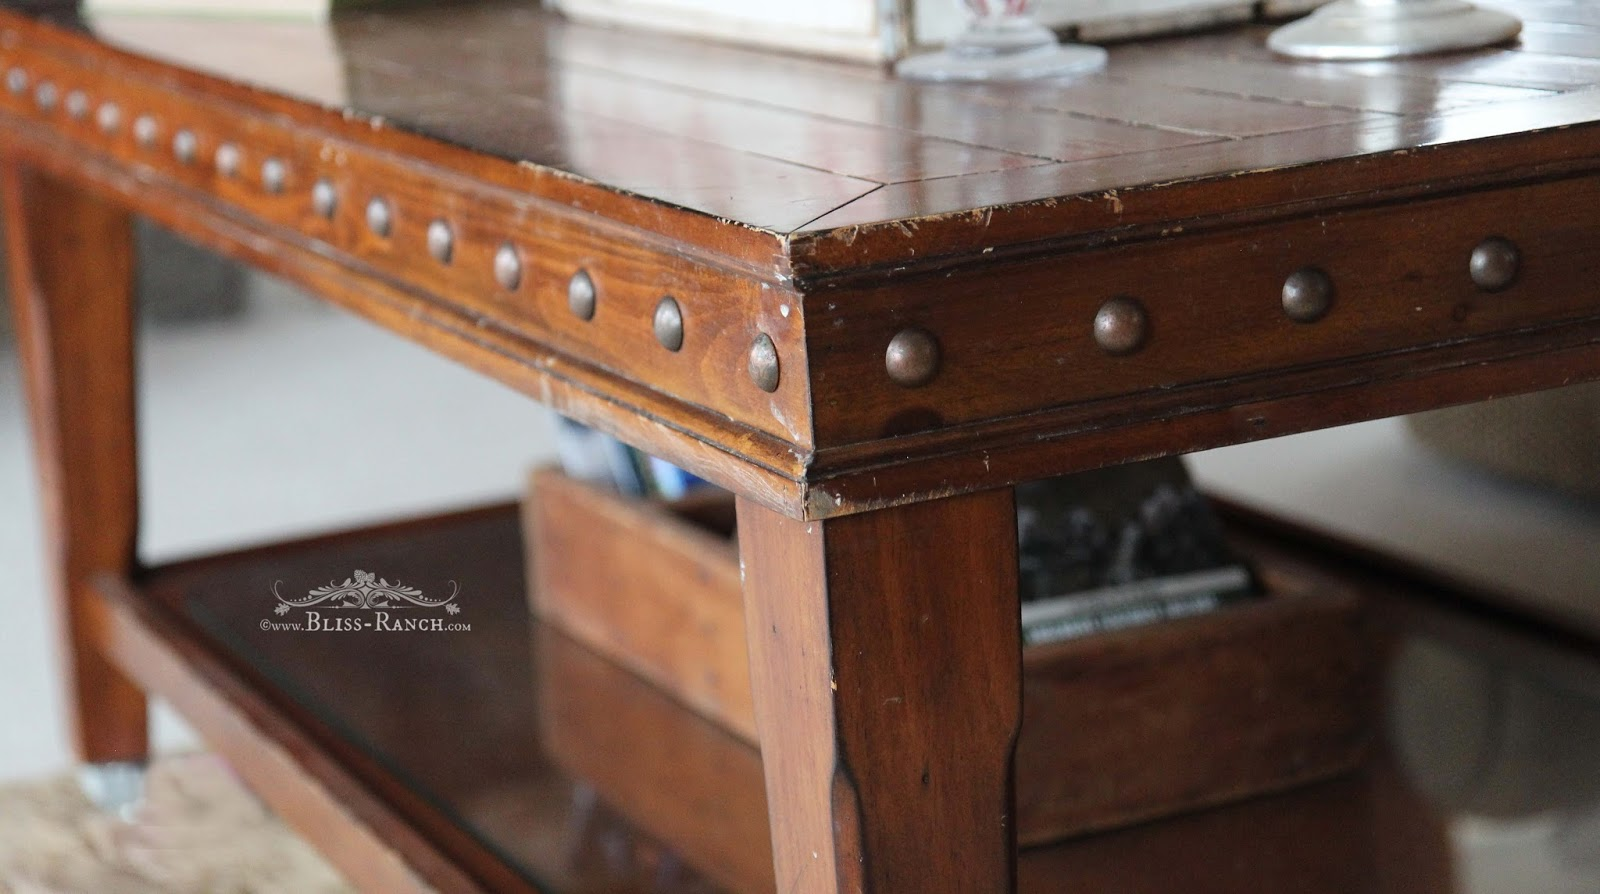 Old Table Painted Faux Metal Top Bliss-Ranch.com Maison Blanche